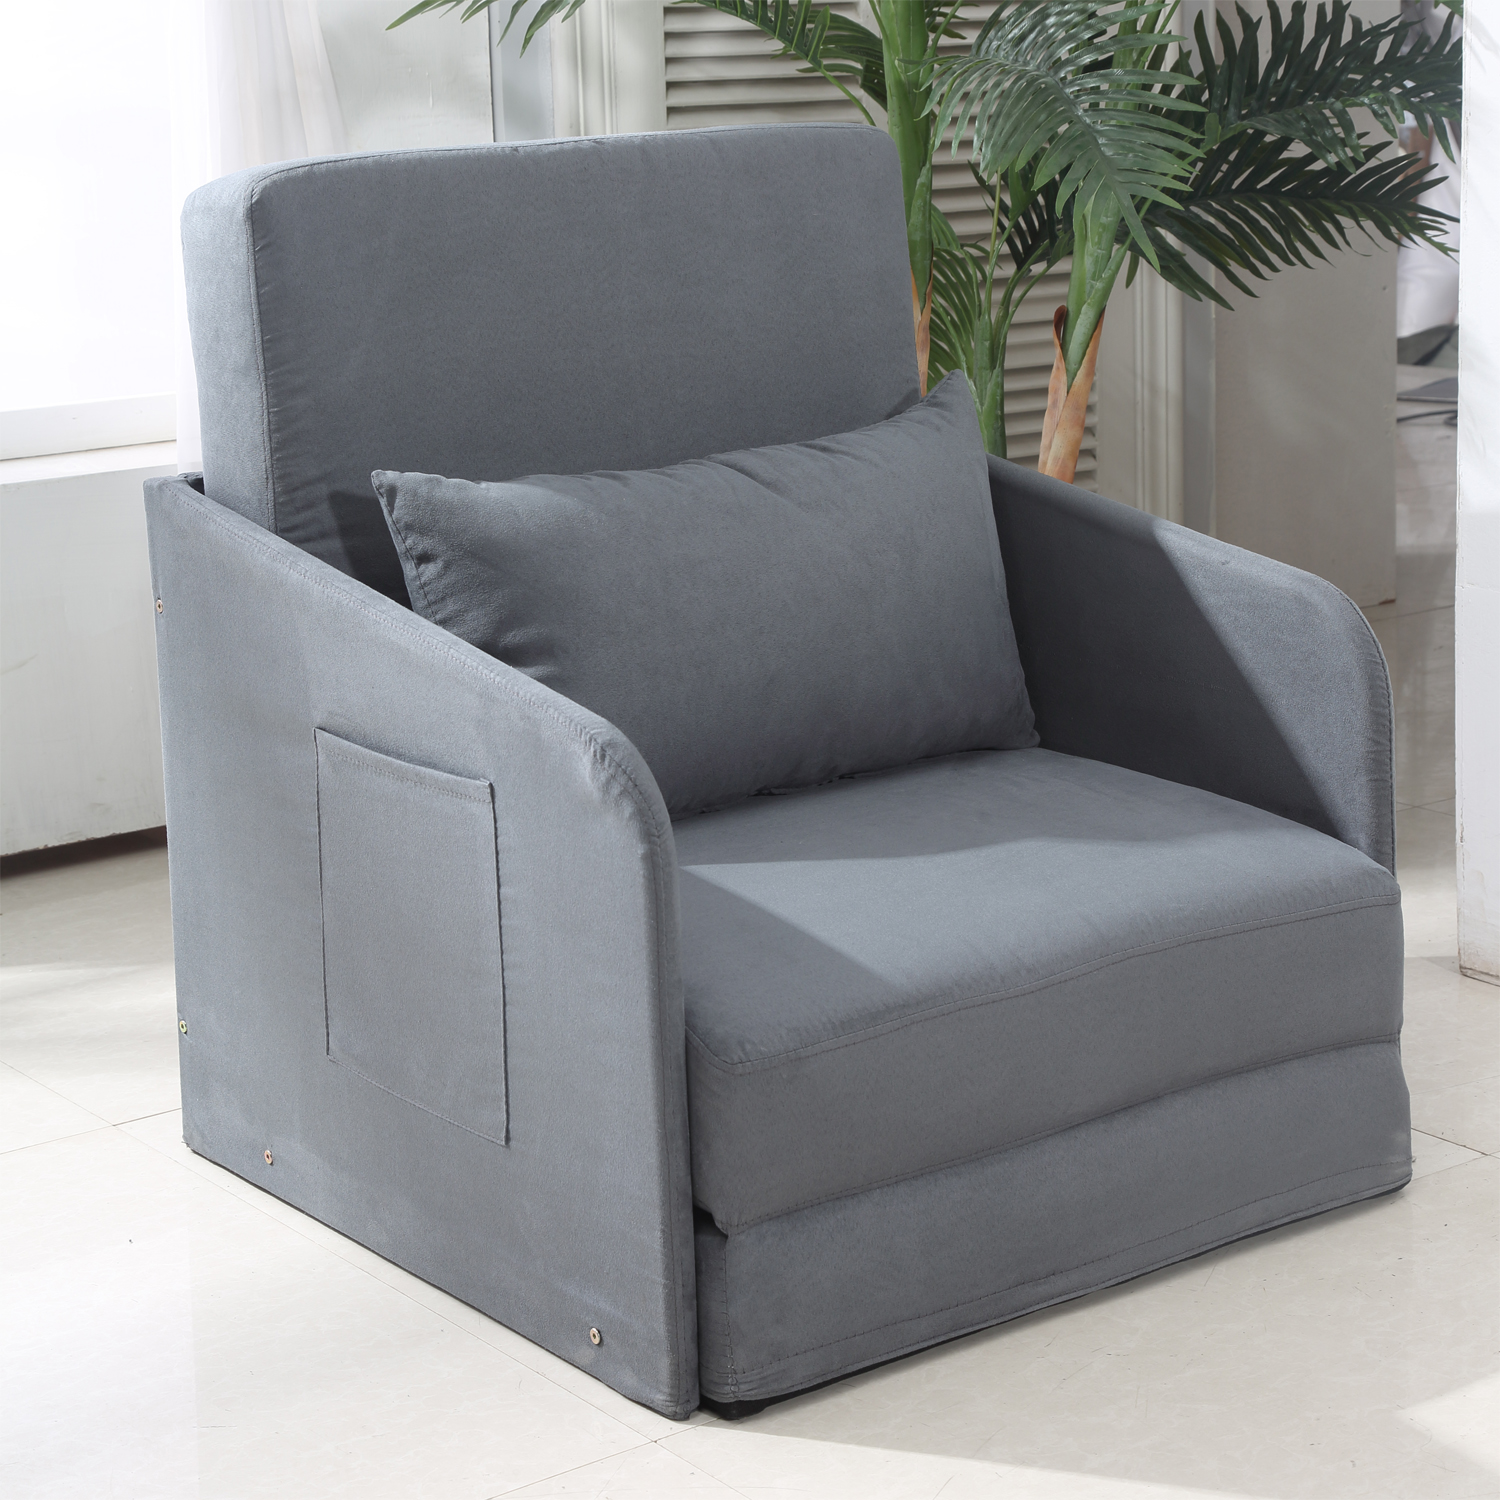 Single Sofa Bed Armchair Soft Floor Sleeper Lounger Futon Couch W - Single Sofa Bed Chair